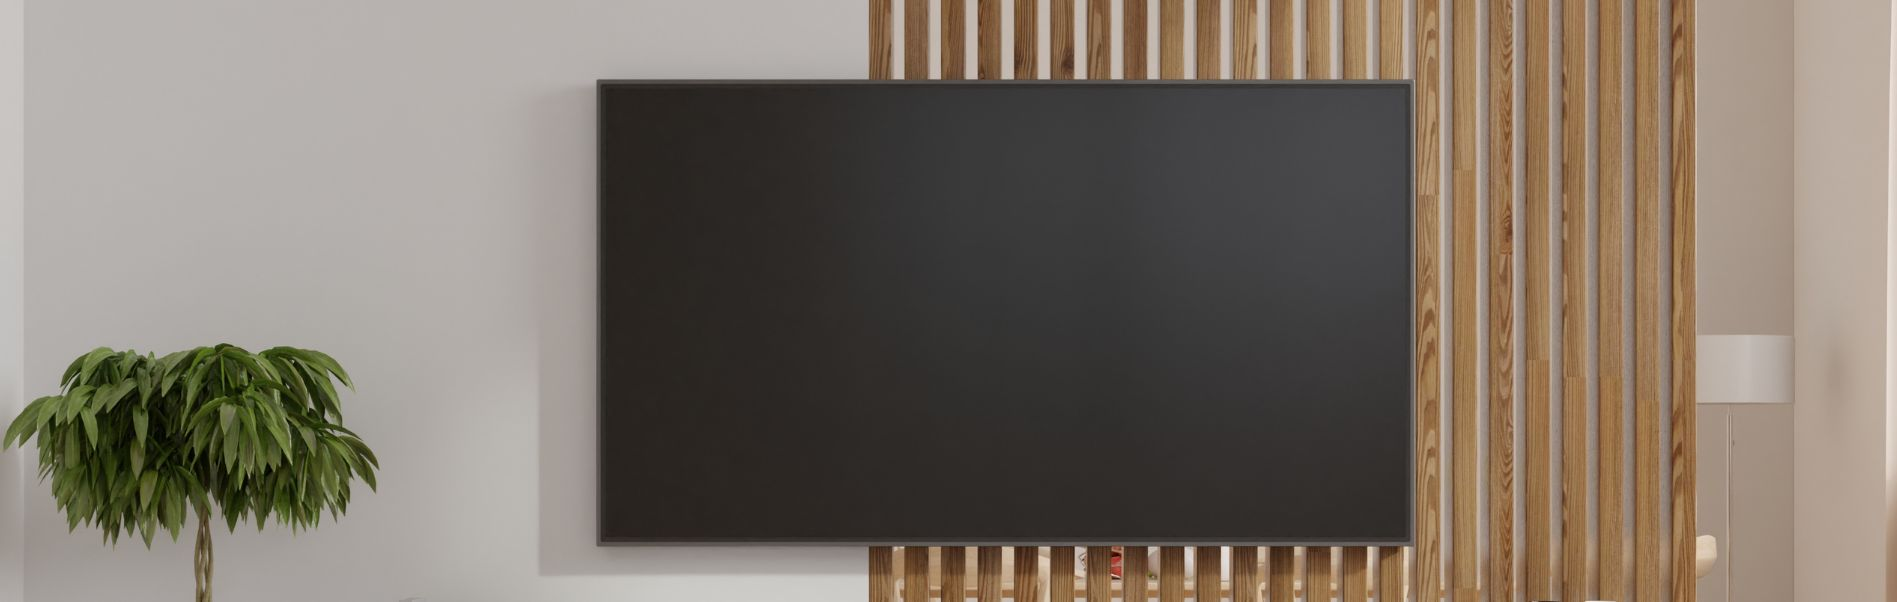 WALL-MOUNTED MONITORS